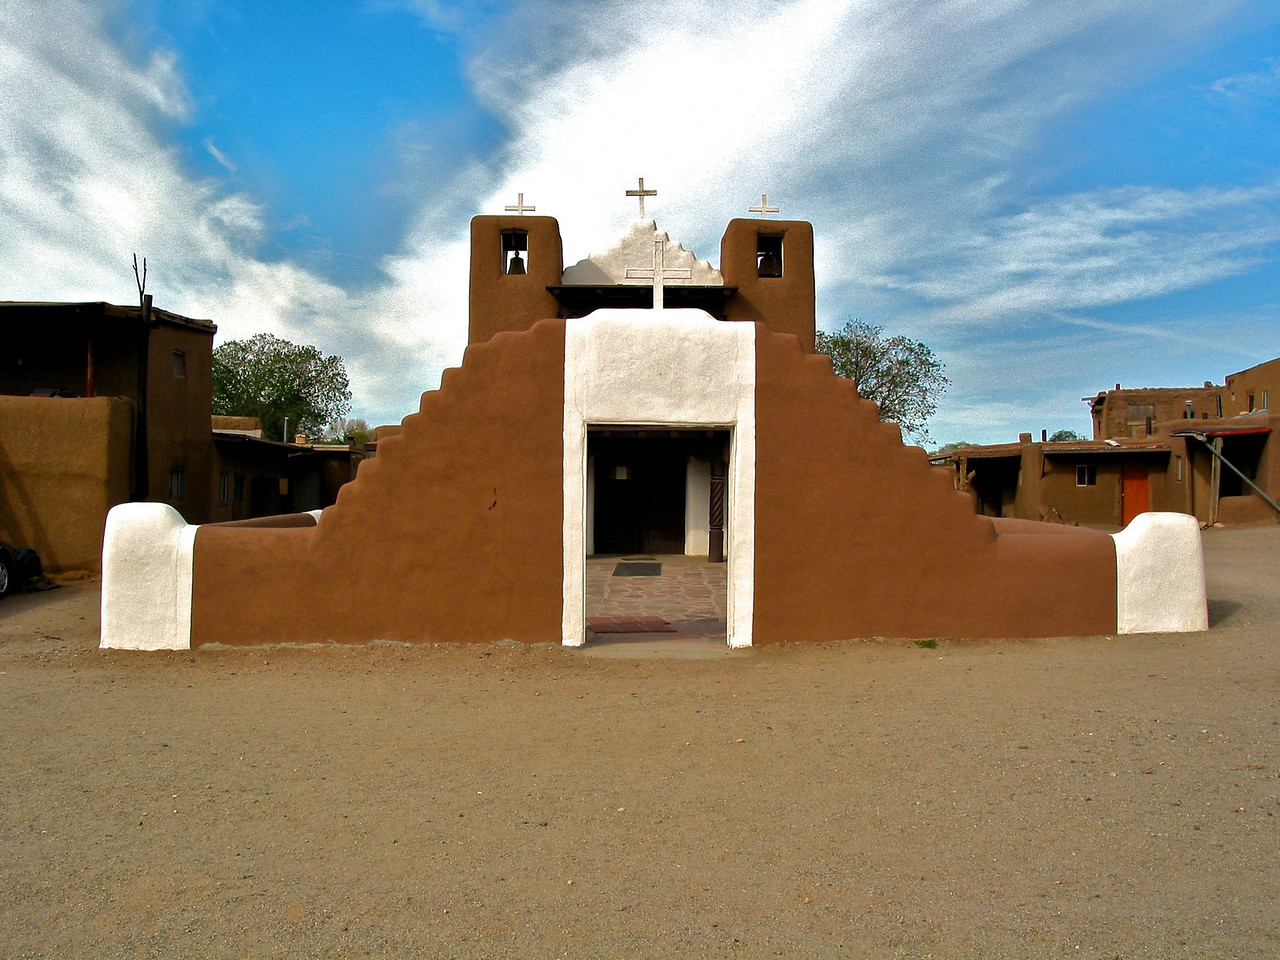 The present San Geronimo, or St. Jerome, Chapel was completed in 1850 to replace the original church which was destroyed in the War with Mexico by the U.S. Army in 1847.